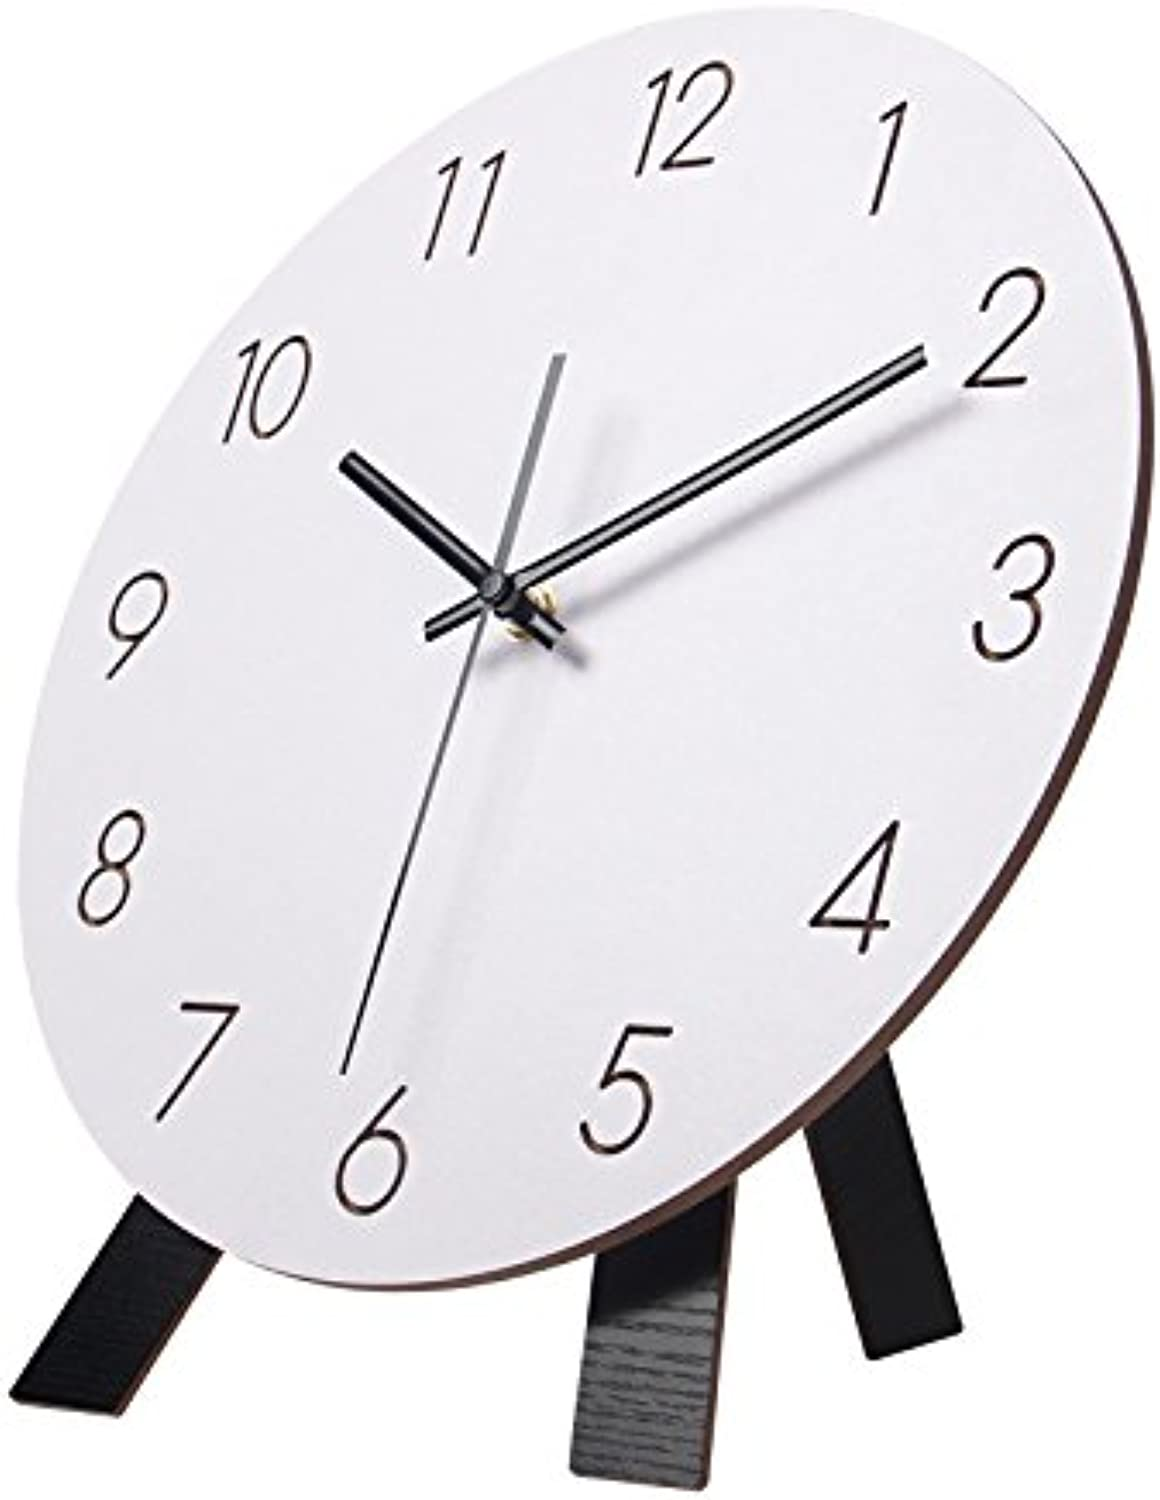 Znzbzt Simple Creative Mute Wall Clock Modern Minimalist Style Wall Clock Mute Living Creative Bedroom Quartz Watches The Nordic Home Clock in Table 12 inch,A+ Bracket